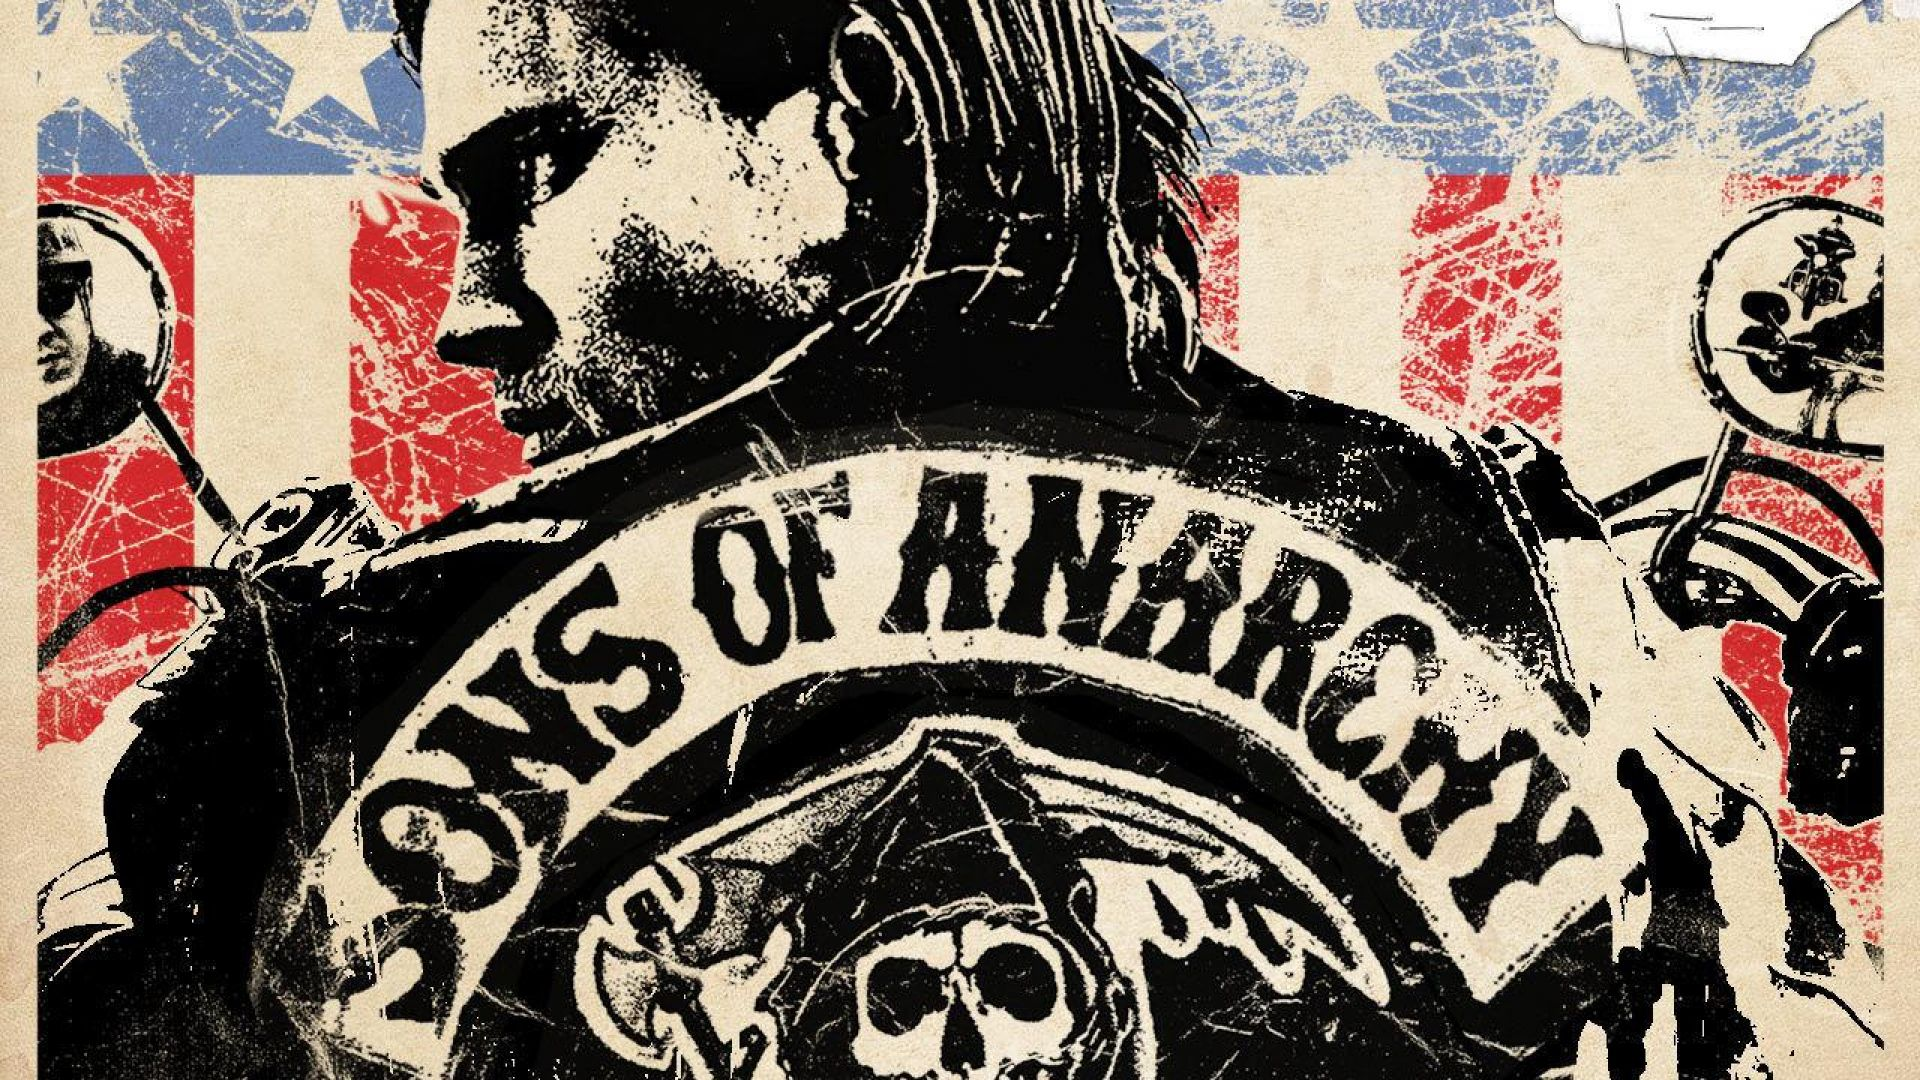 Sons of Anarchy wallpaper 16